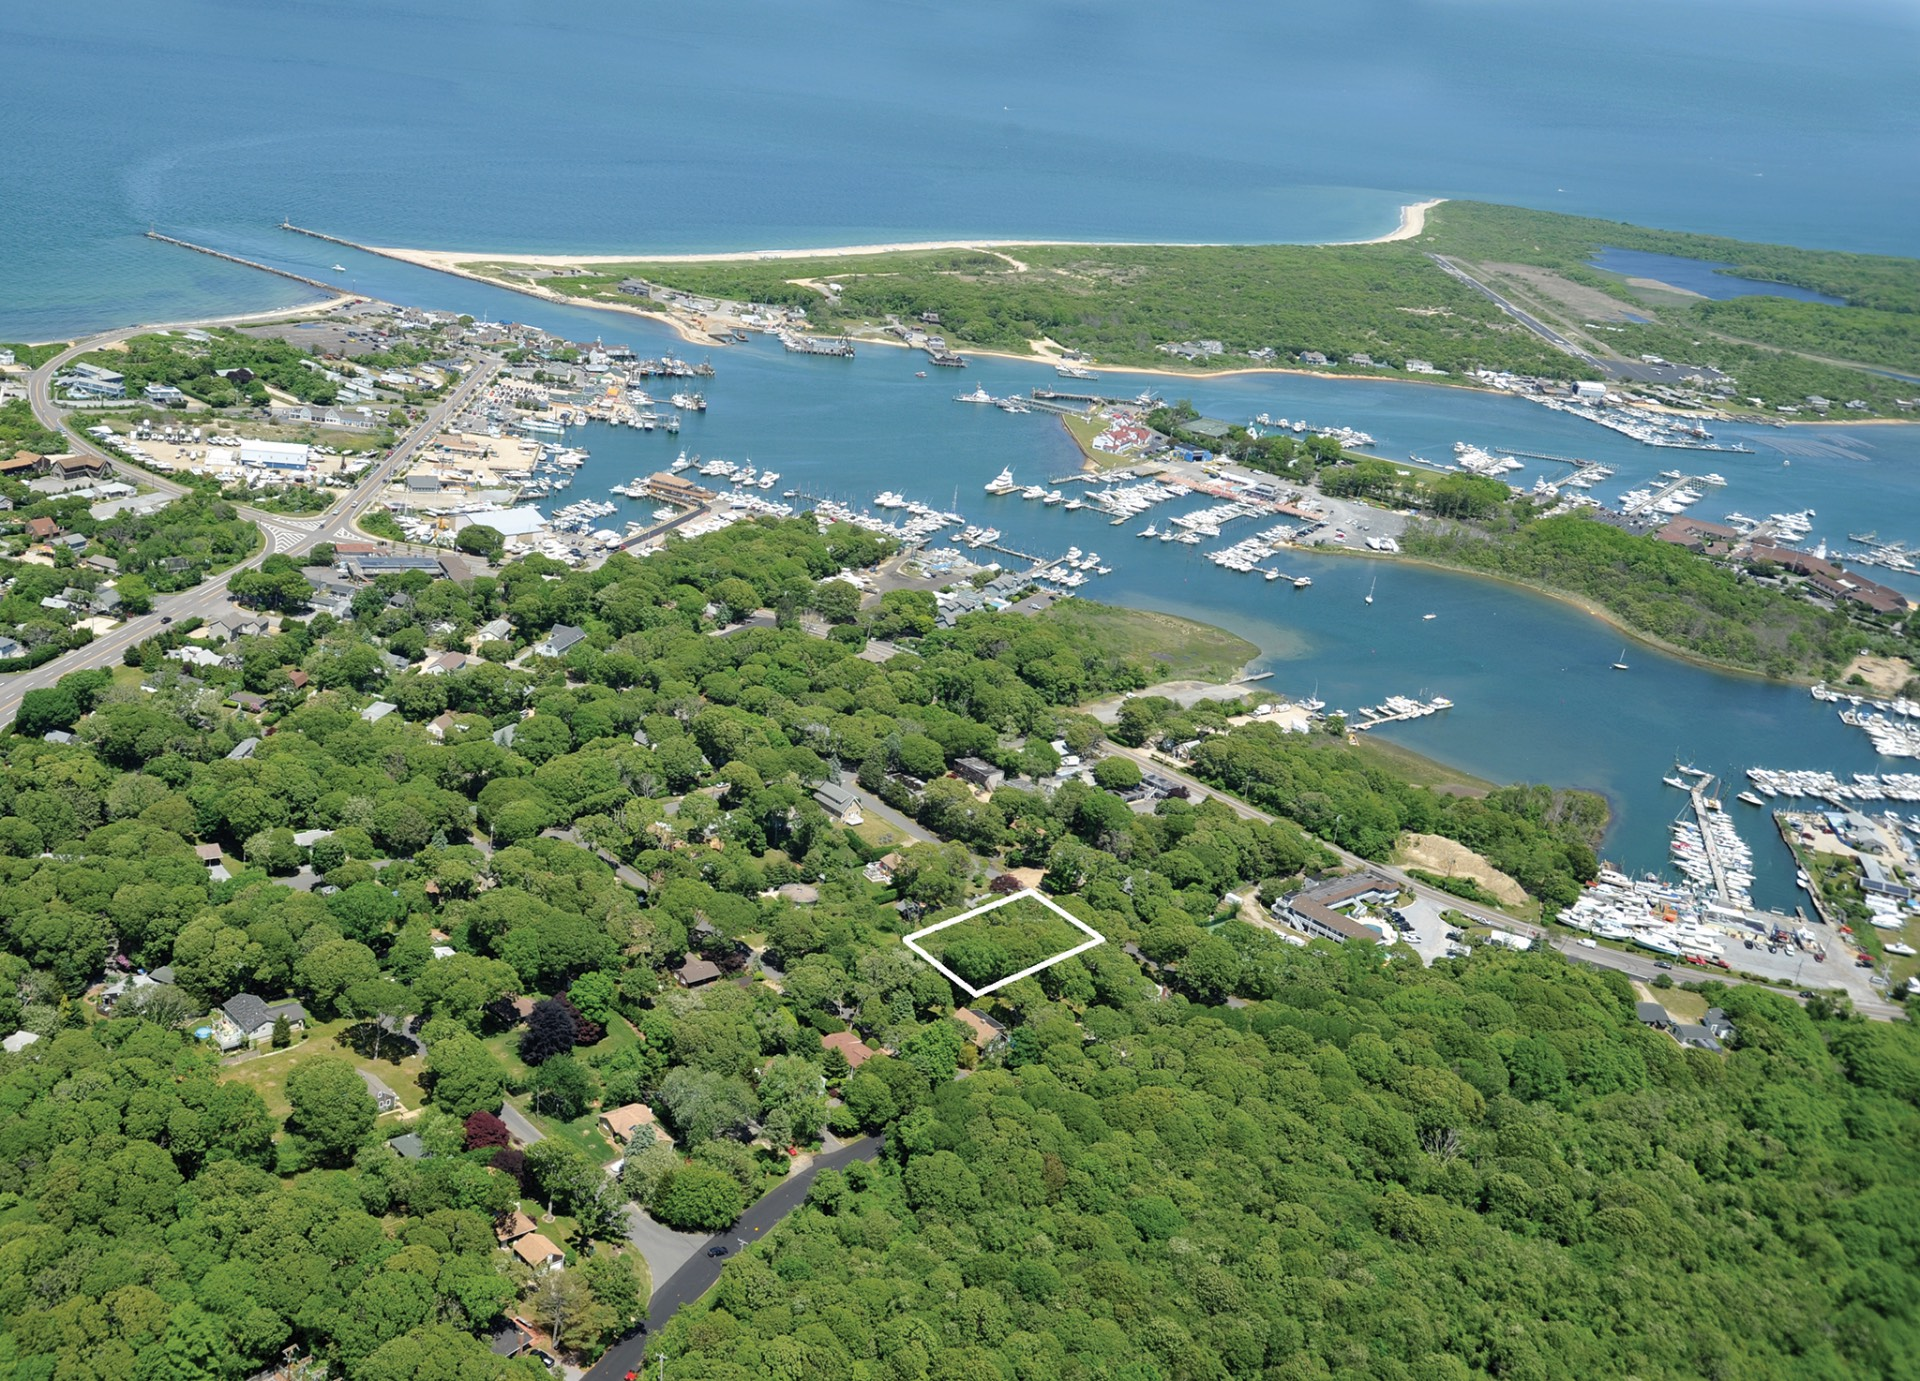 Land for Sale at Vacant Lot With Great Potential In Montauk 101 Mulford Avenue, Montauk, New York